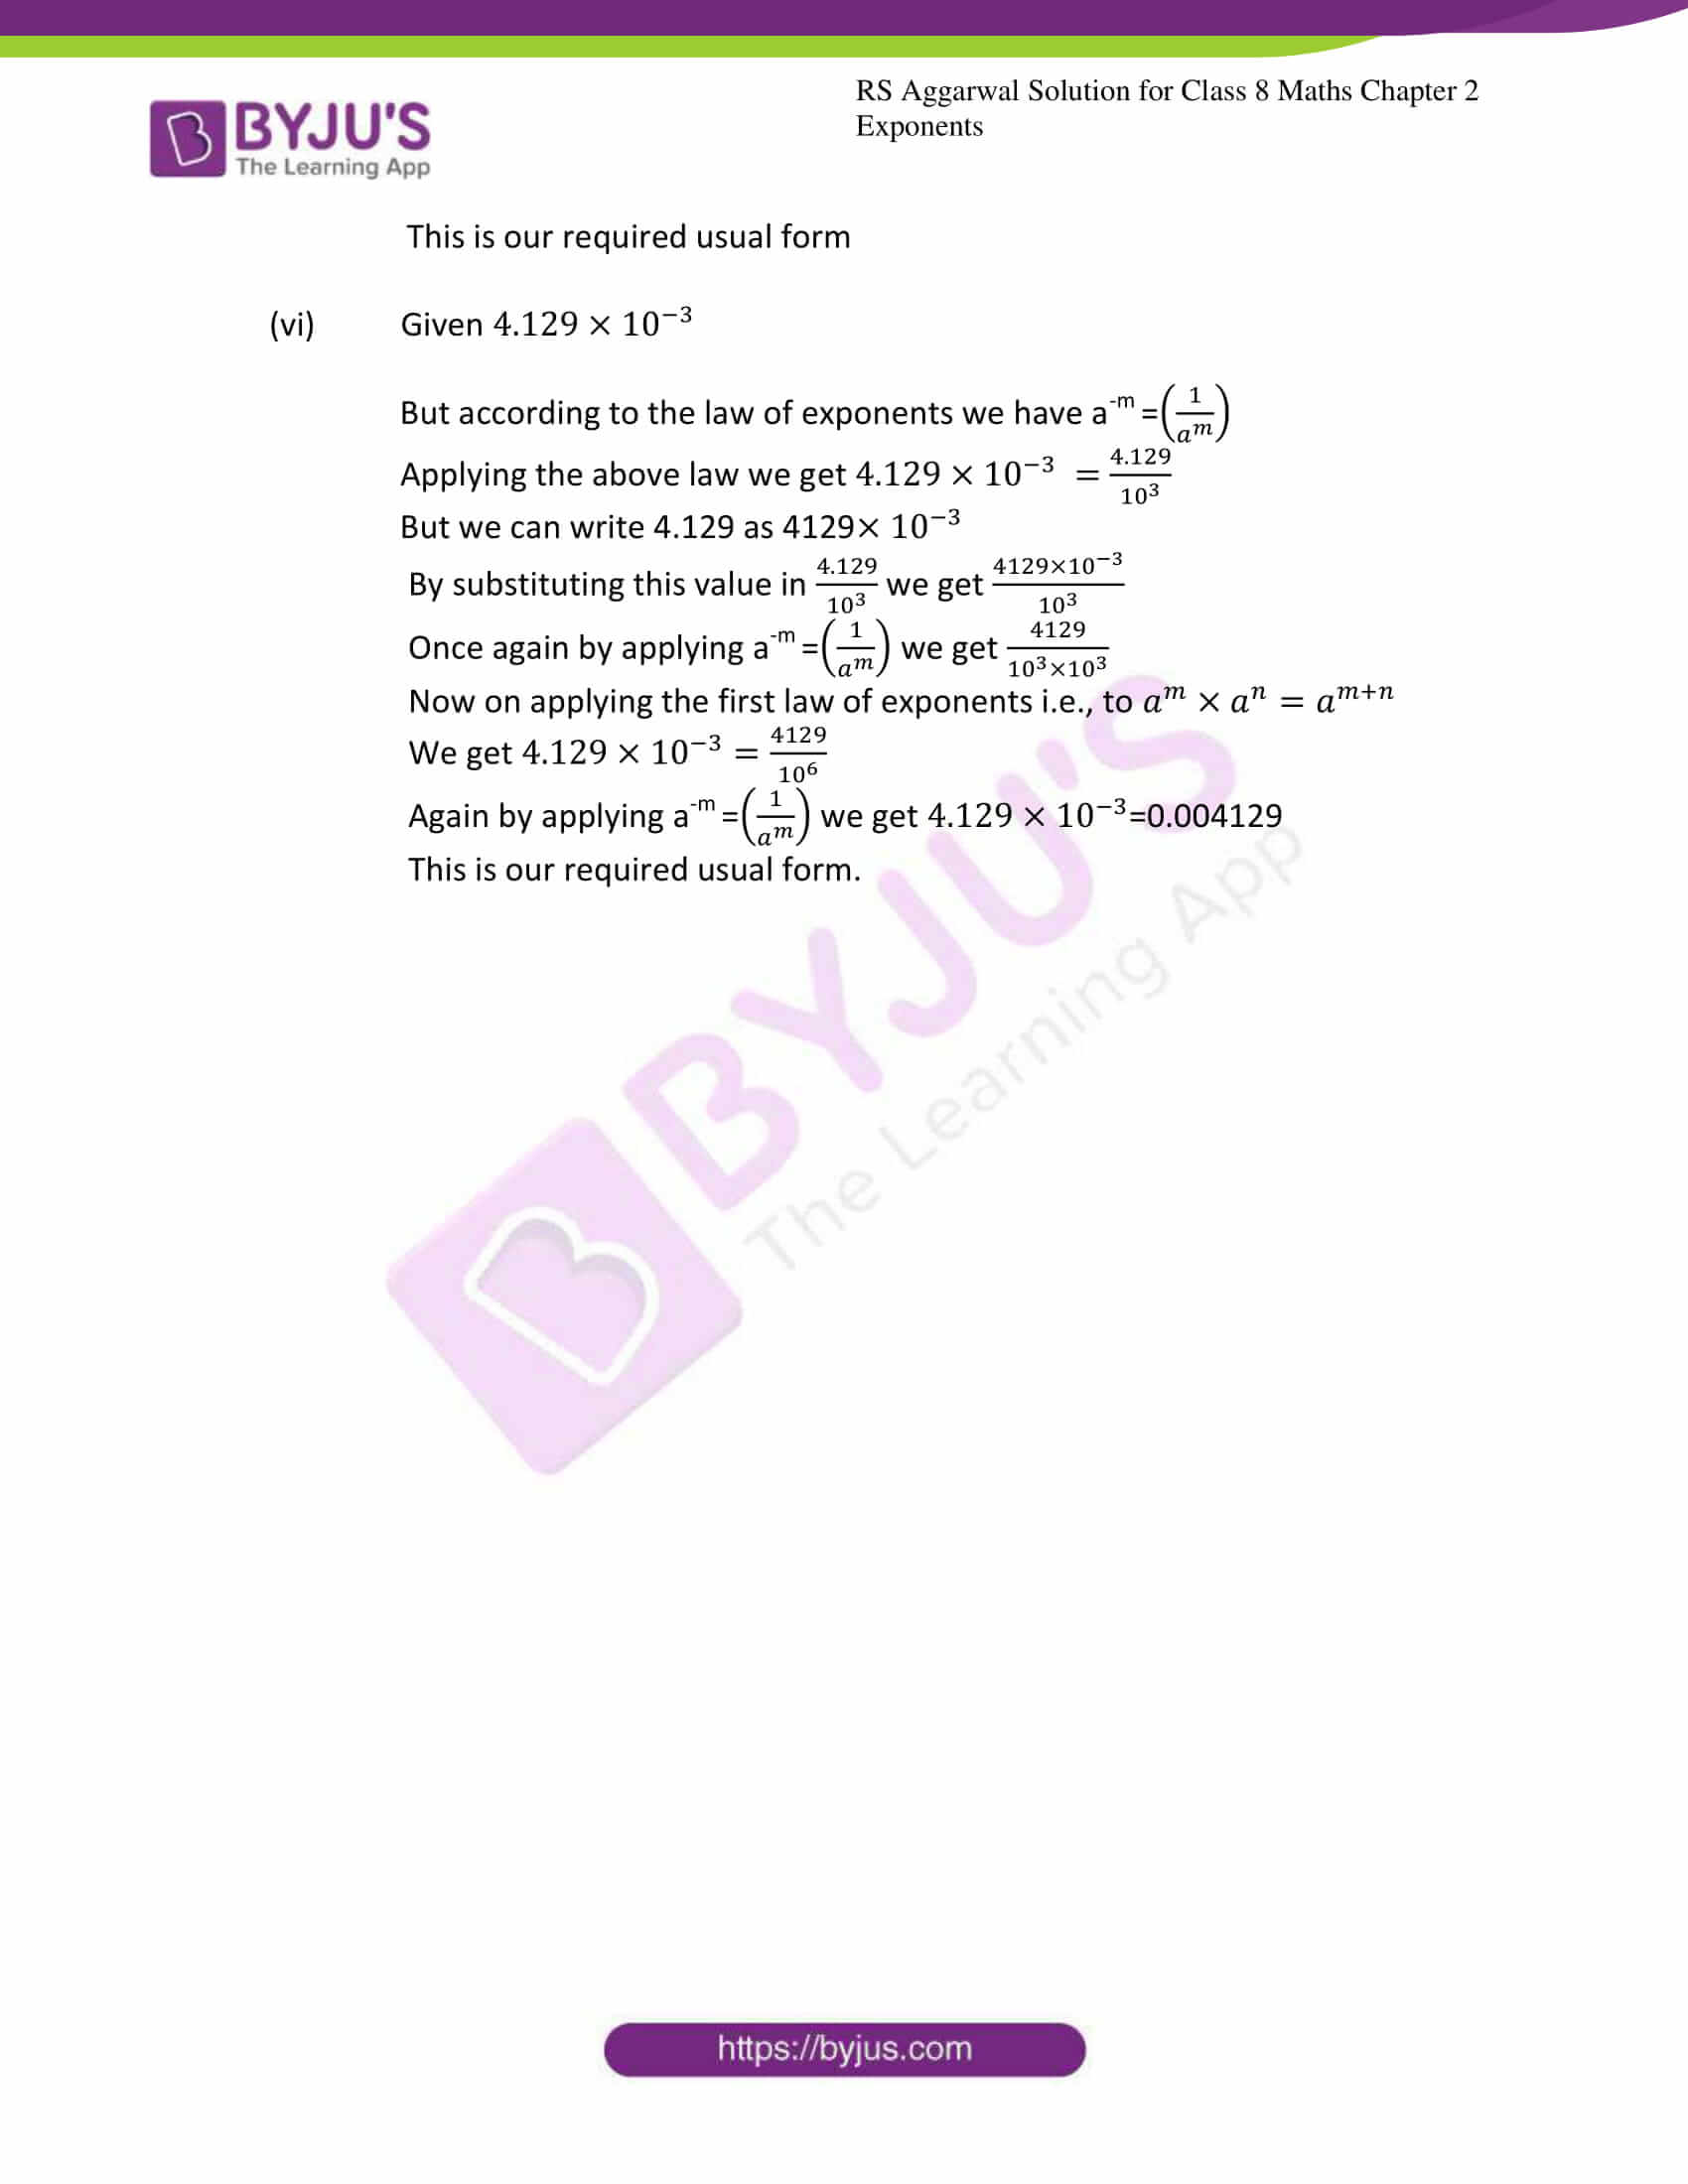 rs aggarwal solution for class 8 maths chapter 2 ex b 8